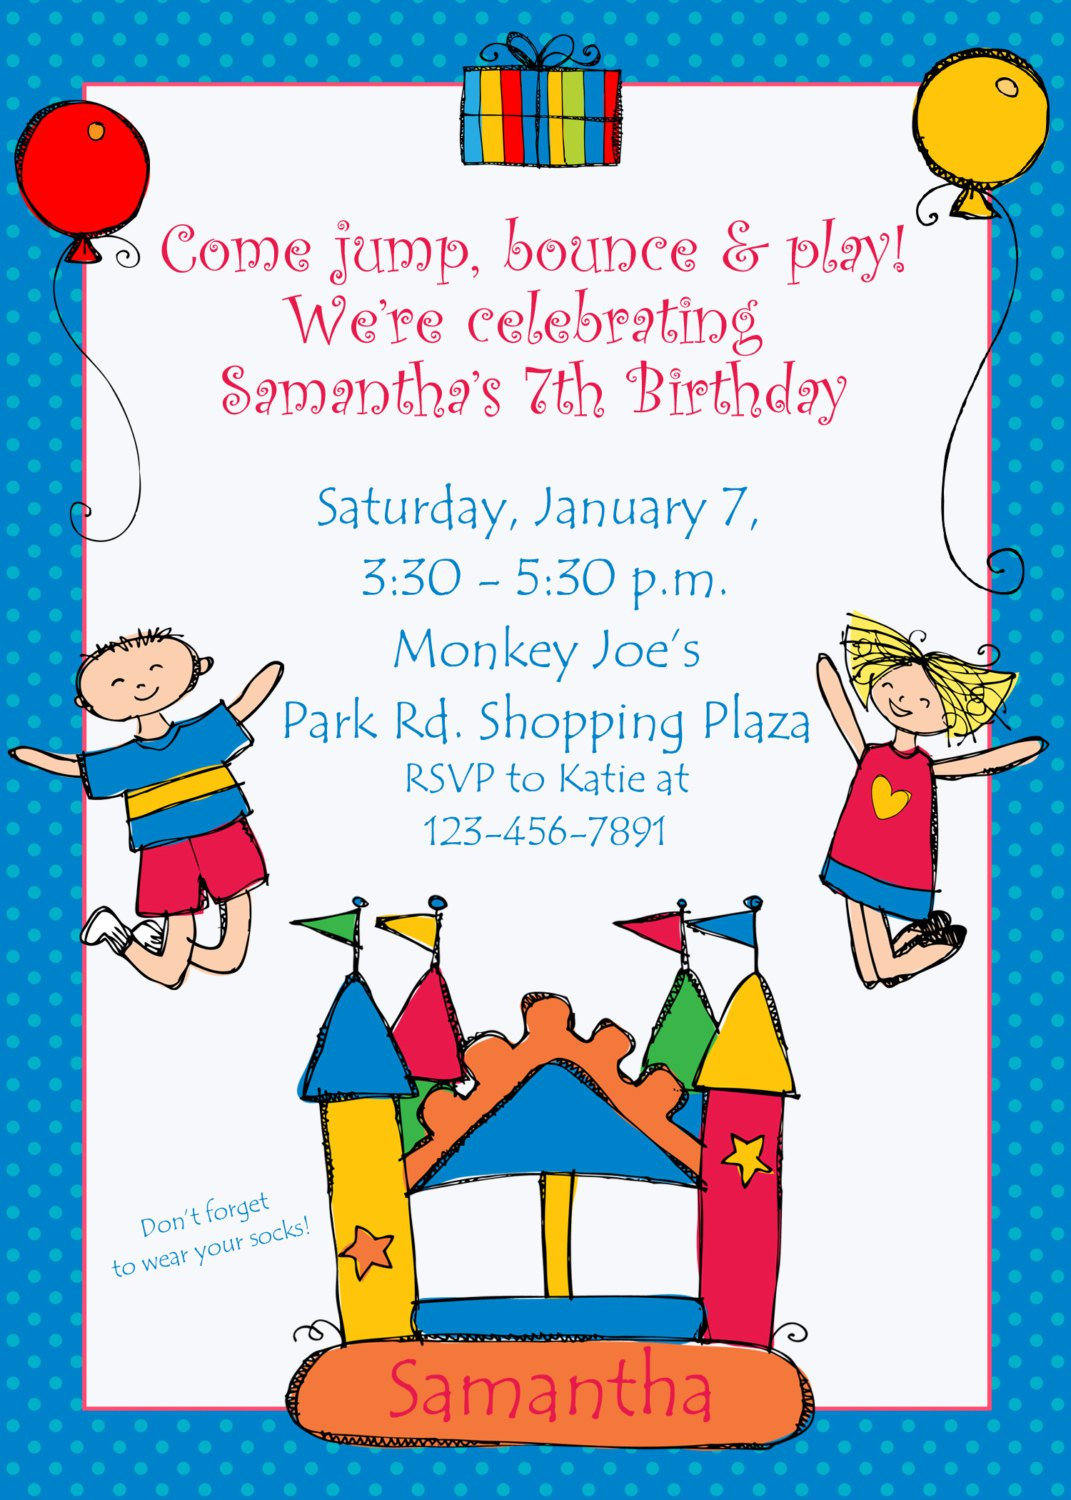 bounce house birthday invitation wording. Black Bedroom Furniture Sets. Home Design Ideas